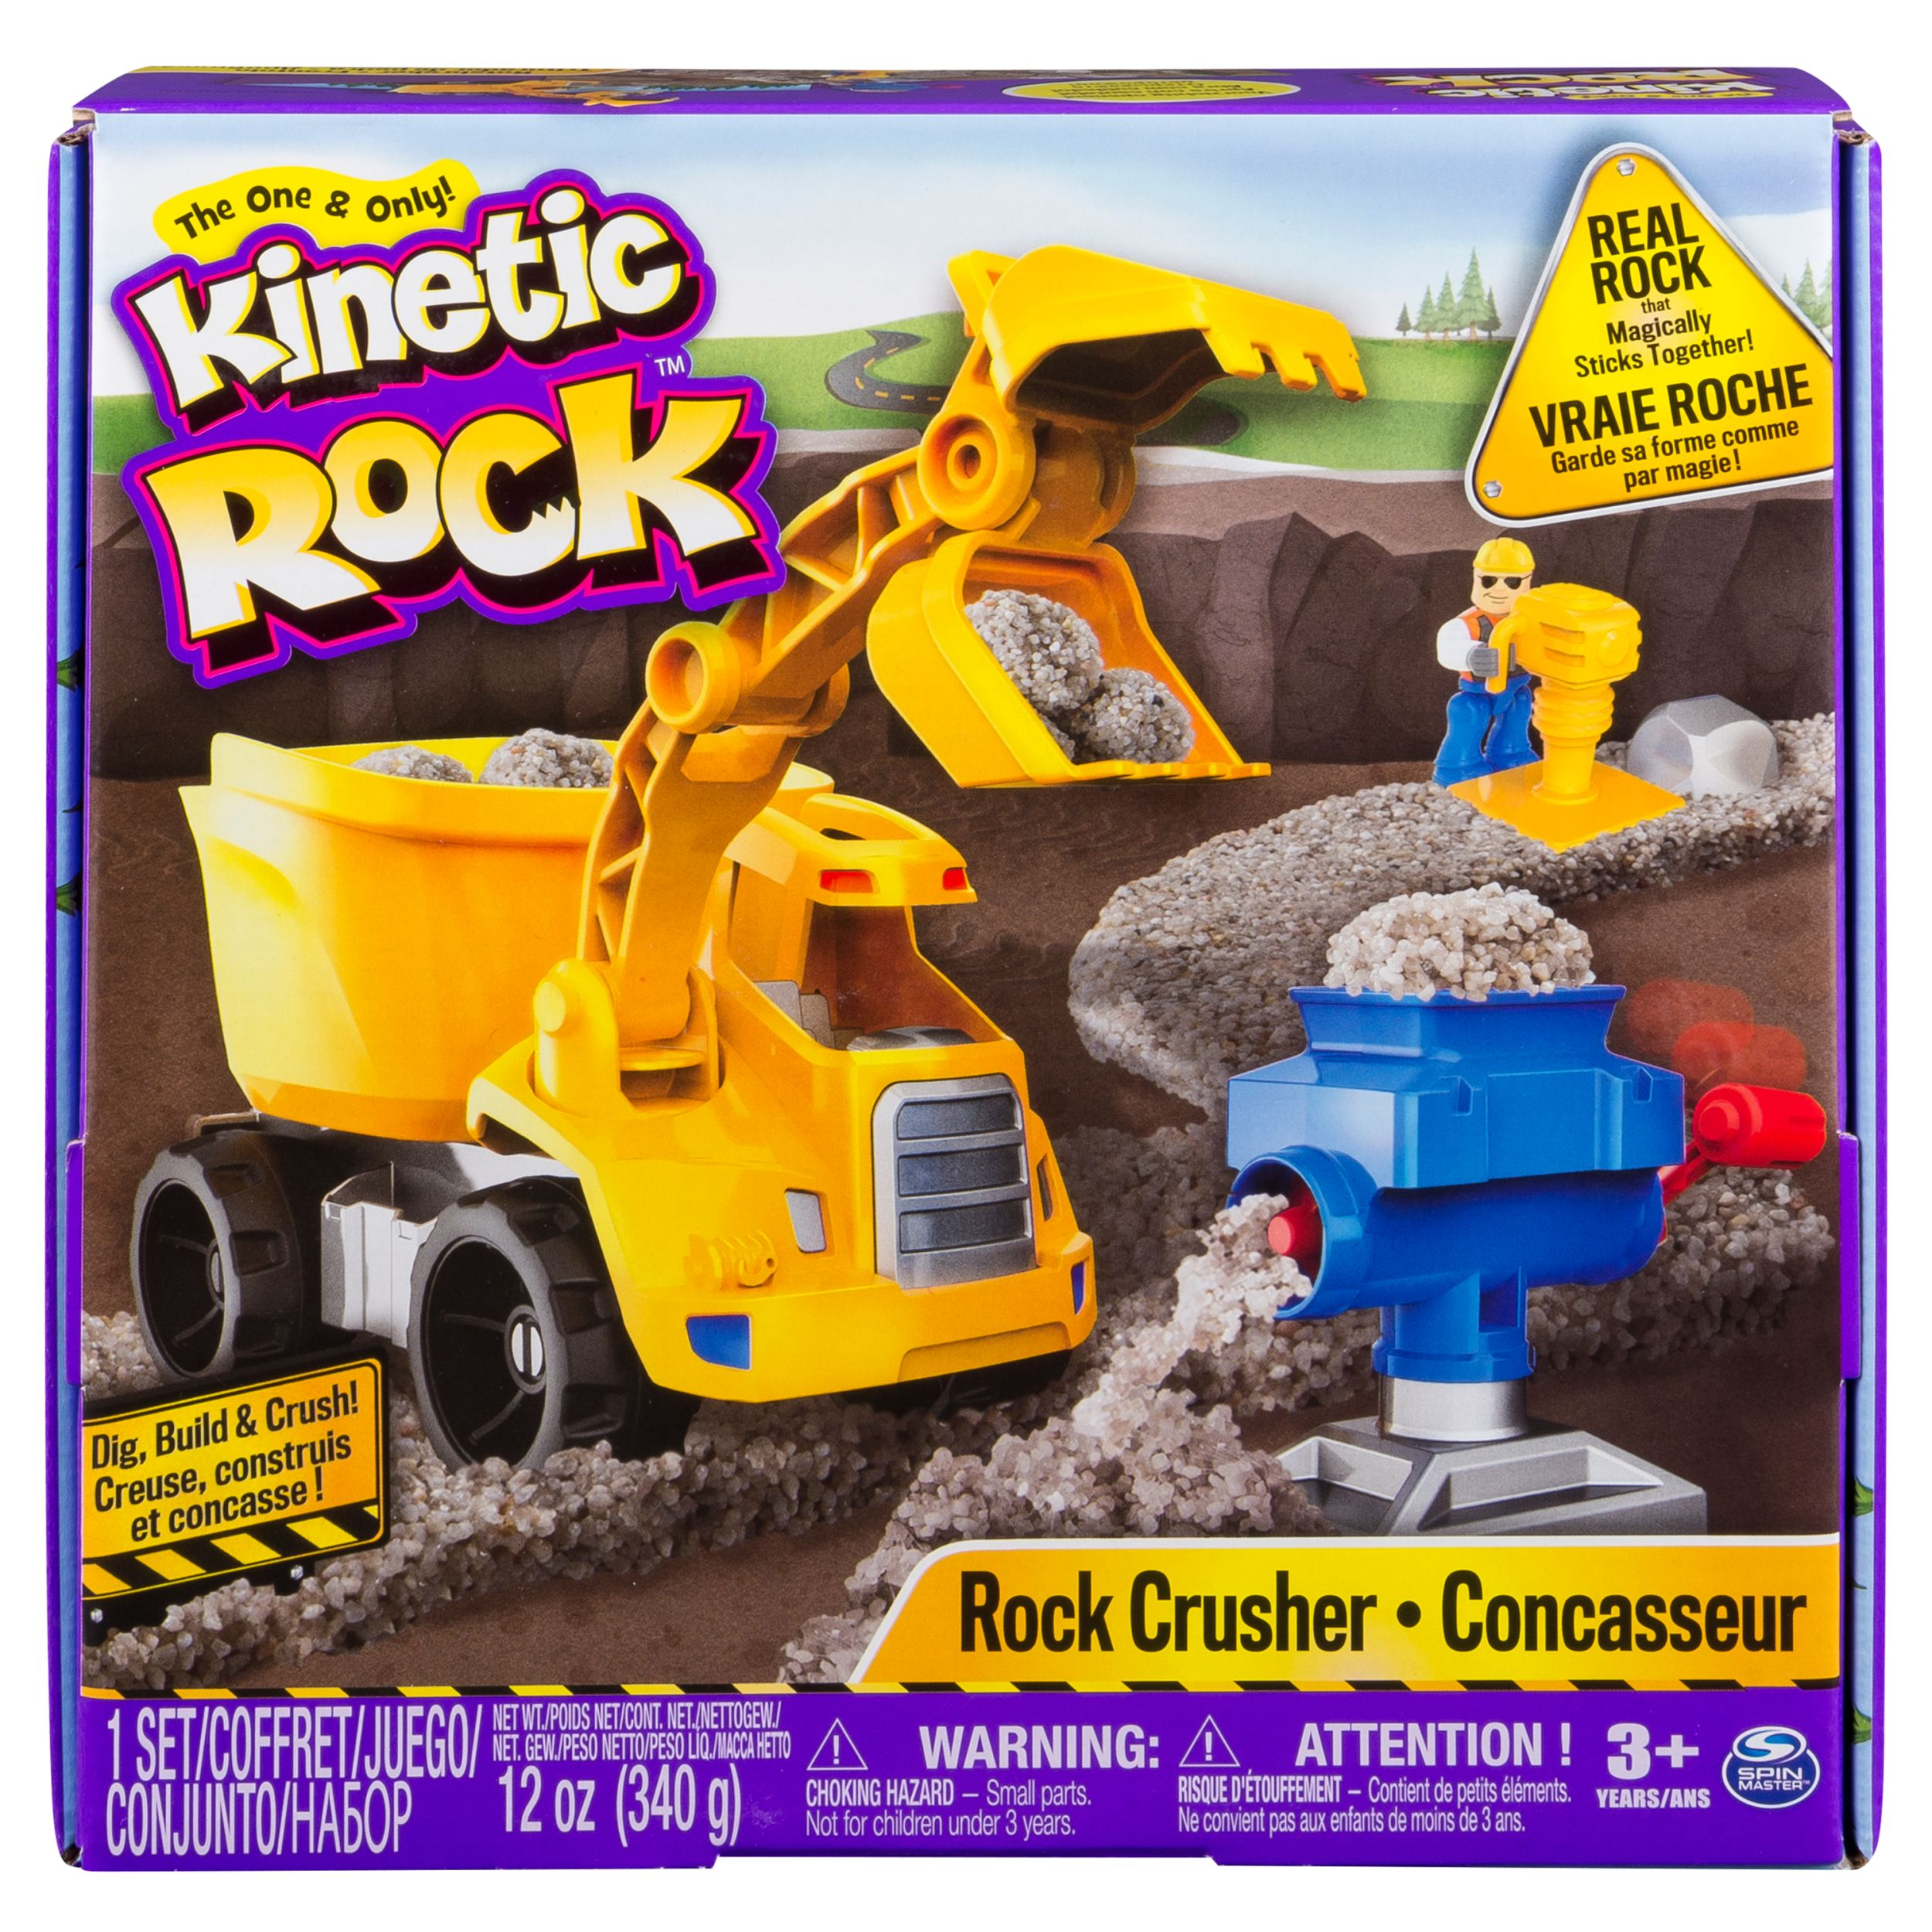 Kinetic Rock ‐ Rock Crusher Toy Kit with Construction Tools, for Ages 3 and Up